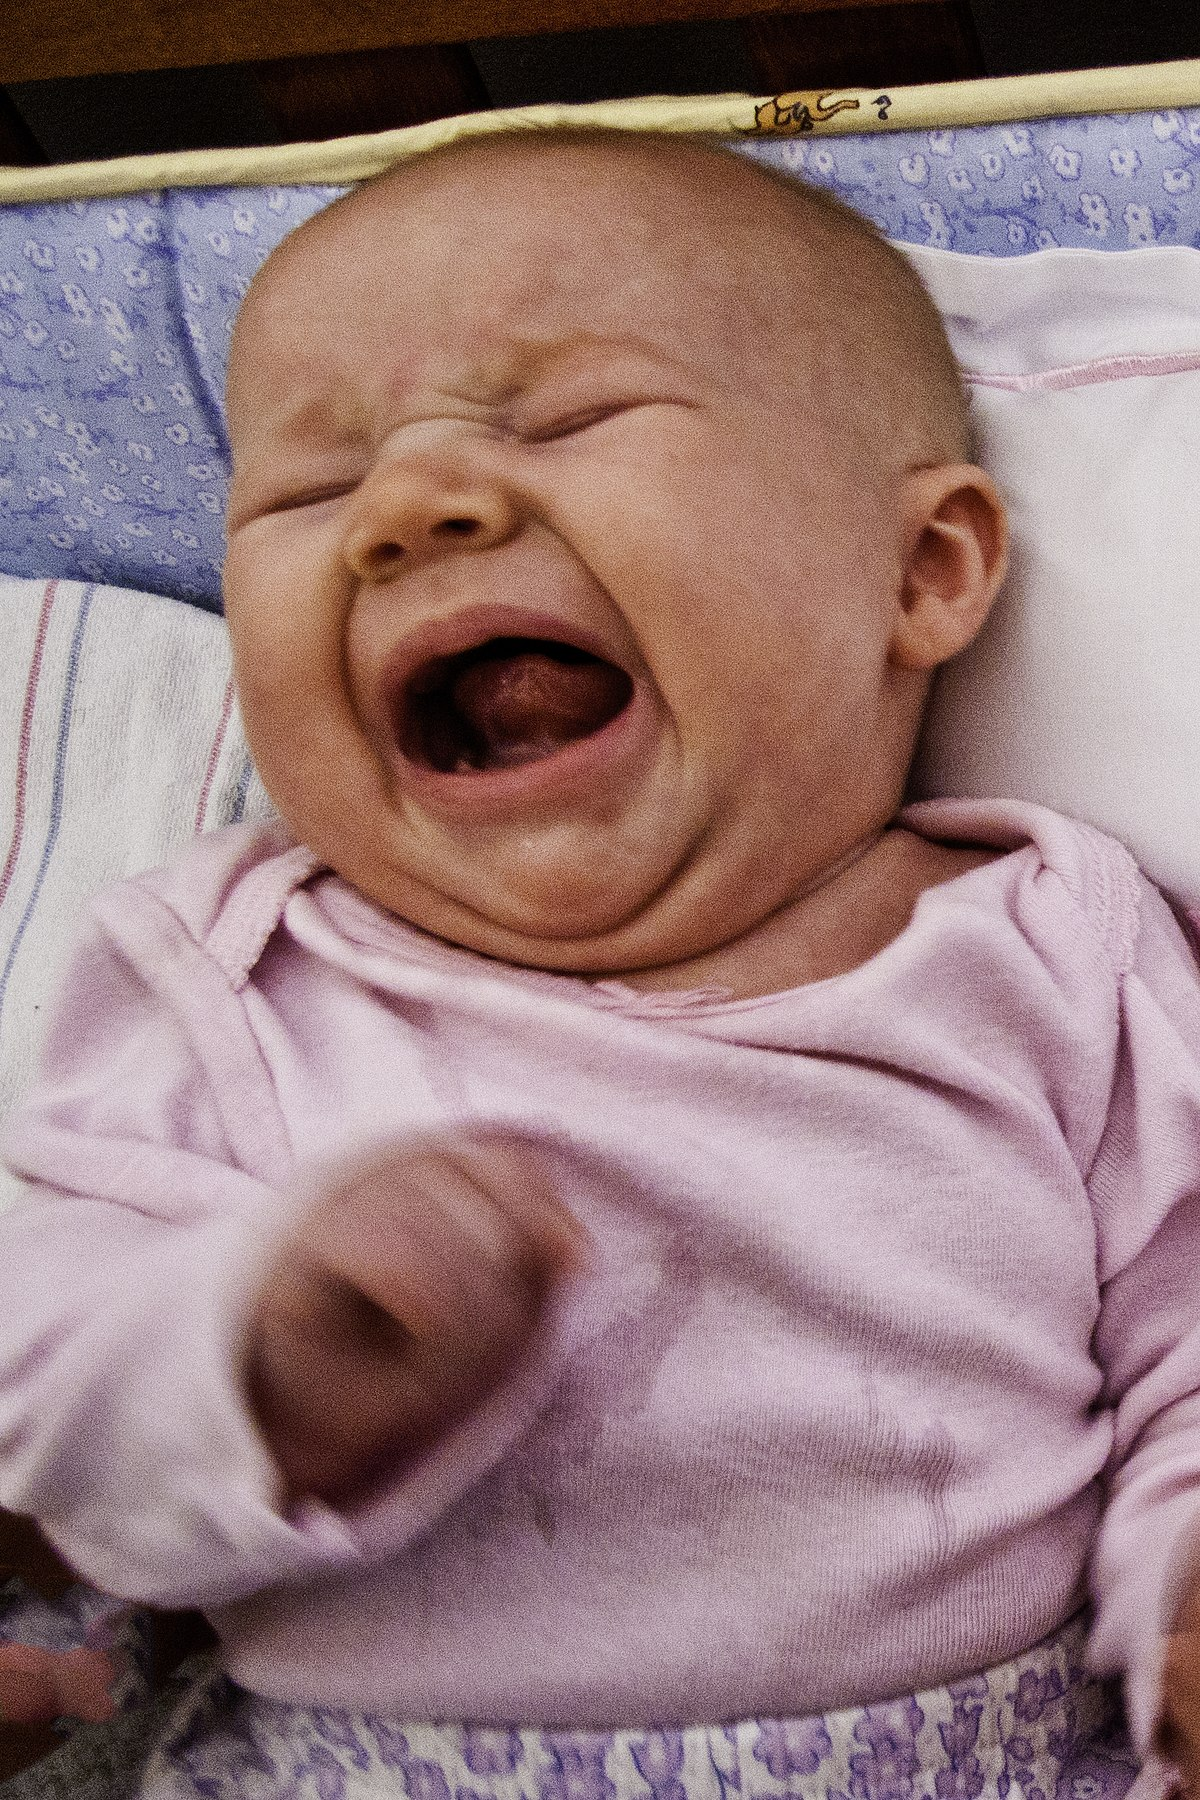 Babies Crying Infant Crying - Wikipedia